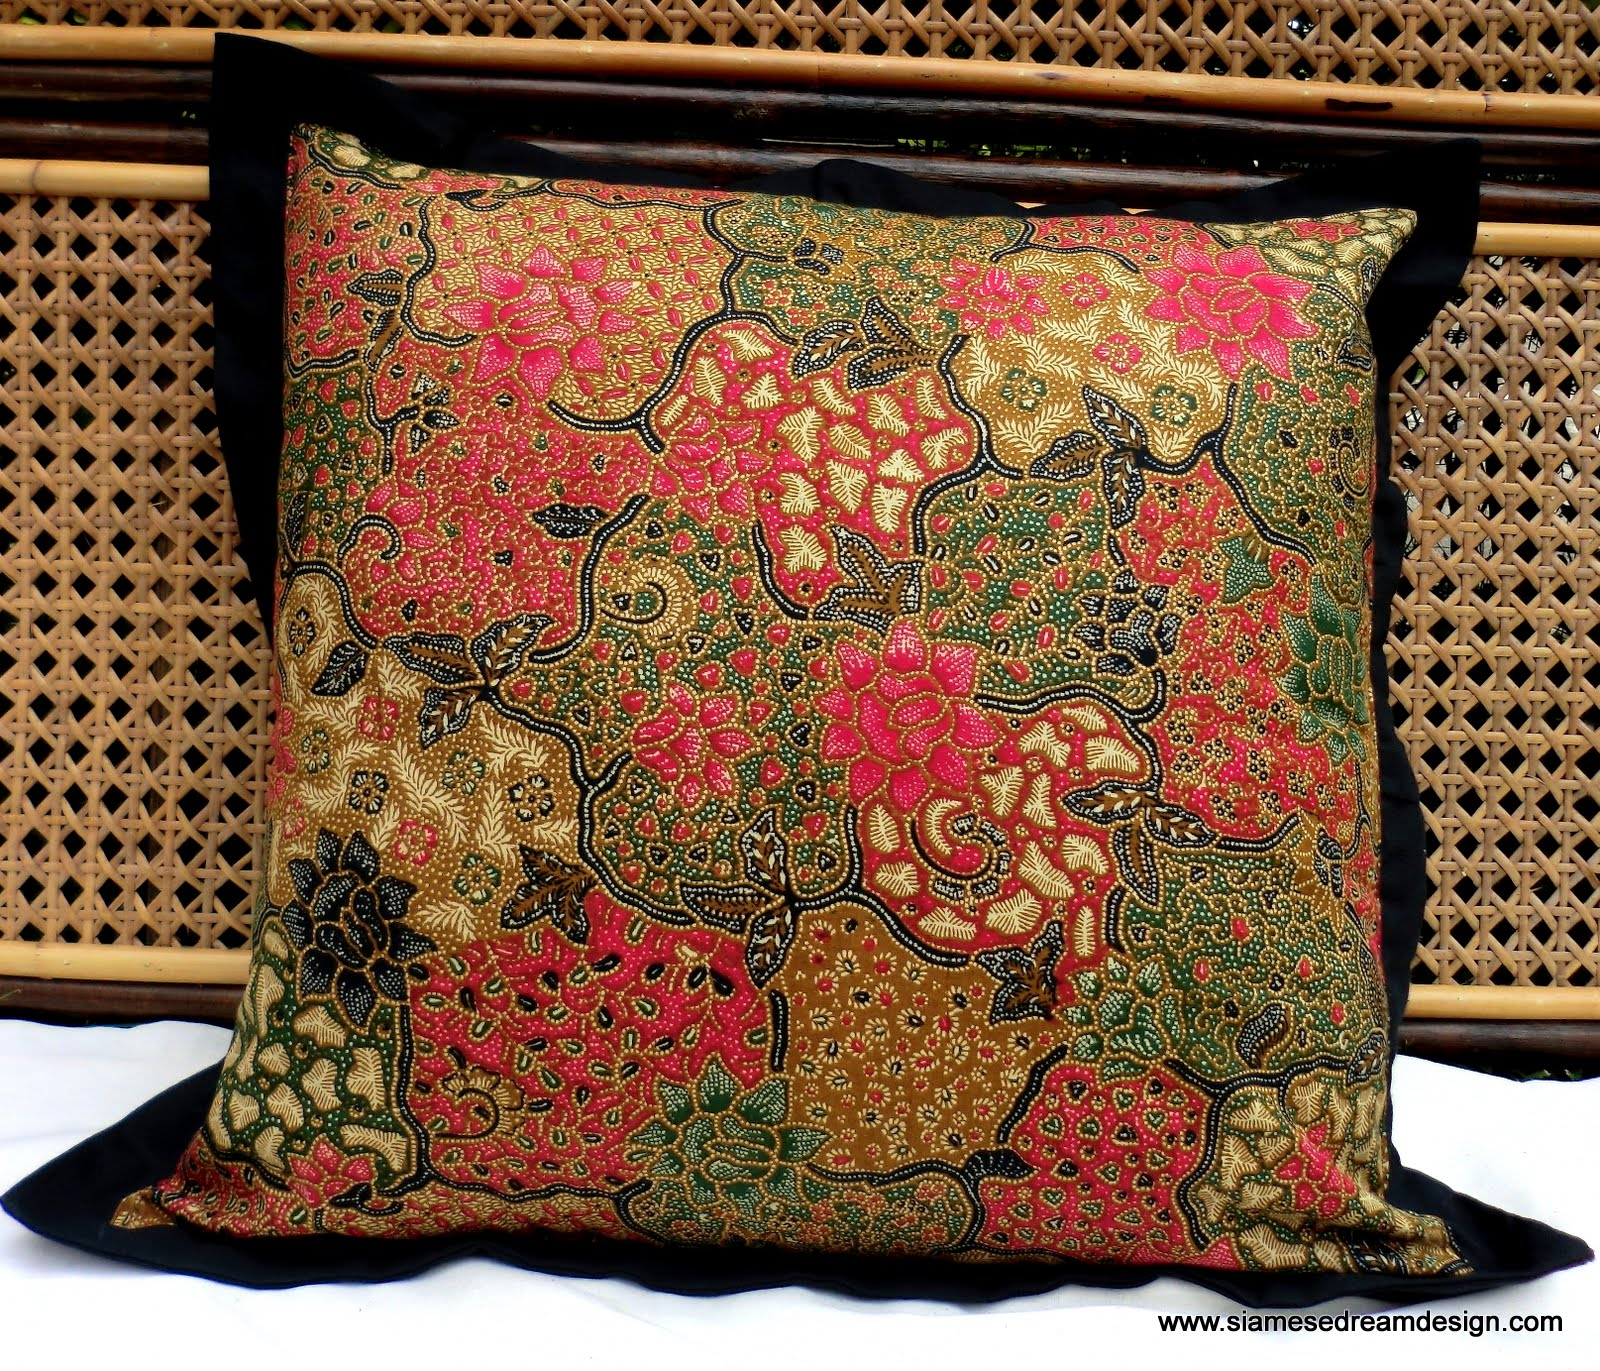 Xl Floor Pillows : XL Floor Pillow Or Cushion Cover In Colorful Natural Balinese Batik Rose Pink And Green 24 Inch ...